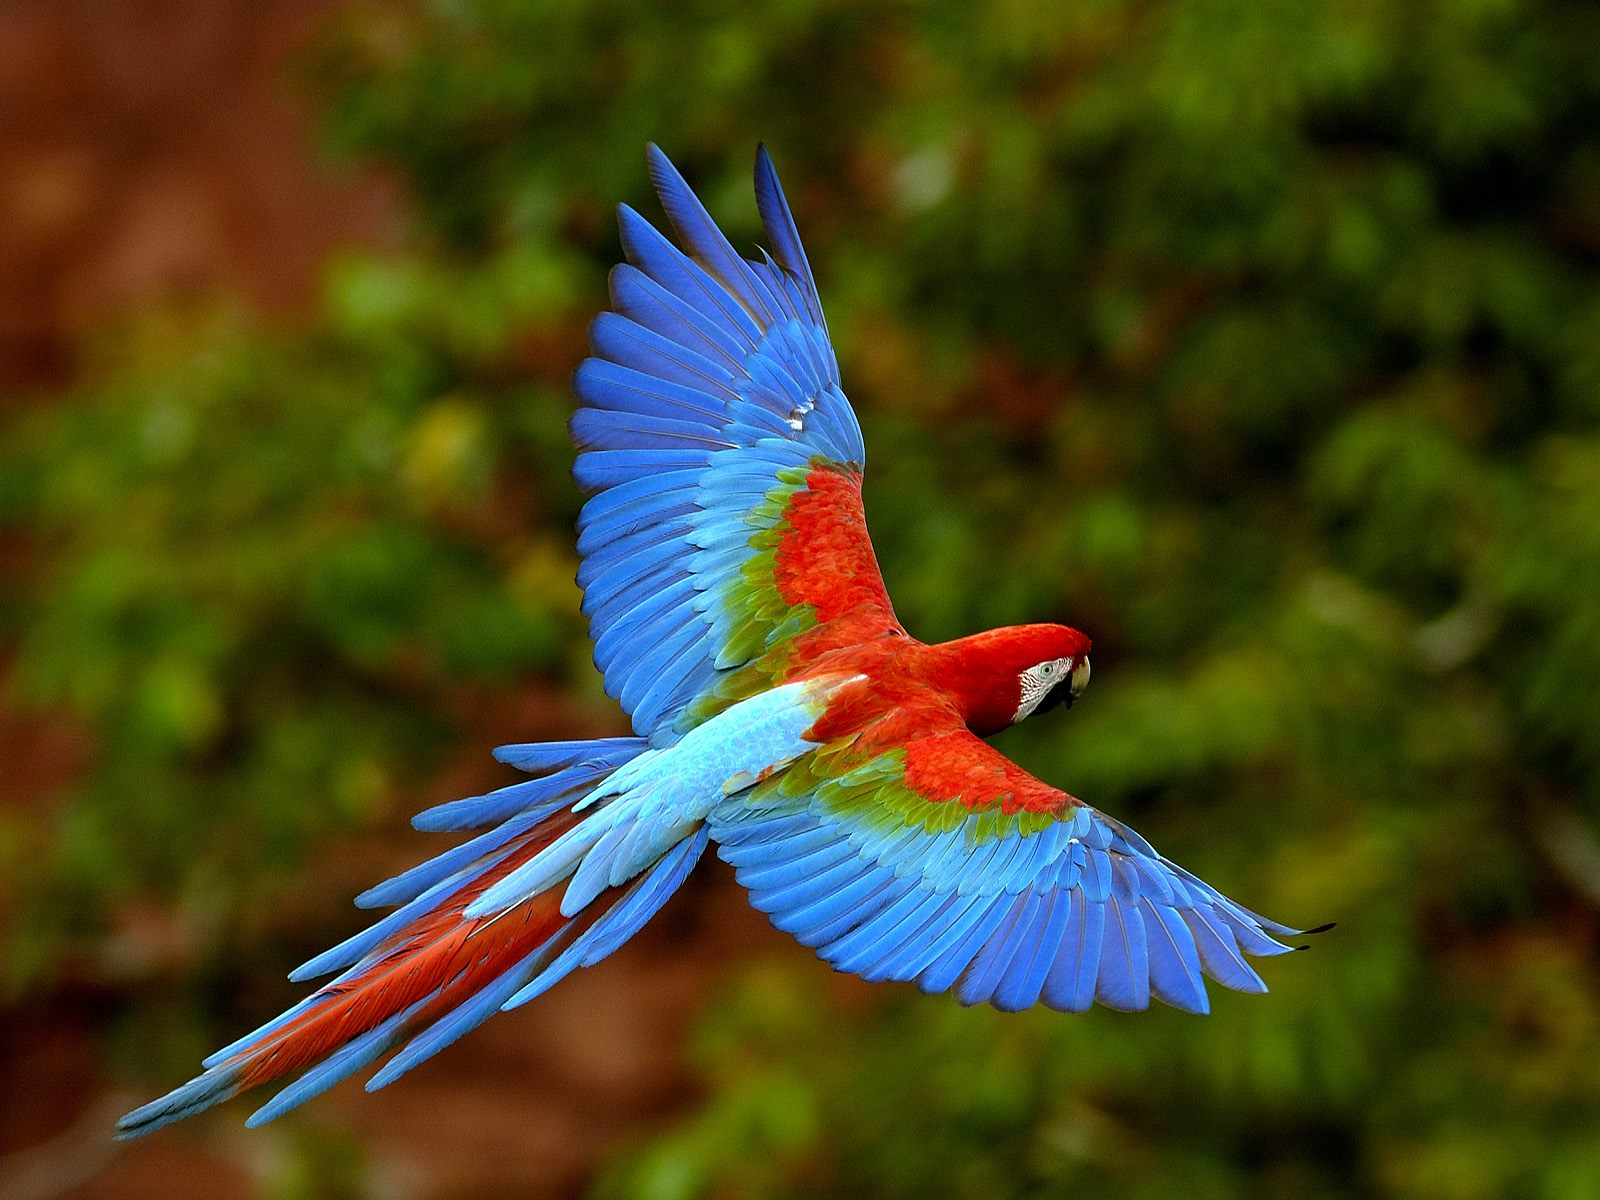 seniors only mobile home park with Macaws on munity Tiny House Trailer Park 521470 as well 6051 Pictures Nc Anyone in addition ManufacturedHomeForSale besides Cute Turtle Pictures besides Macaws.